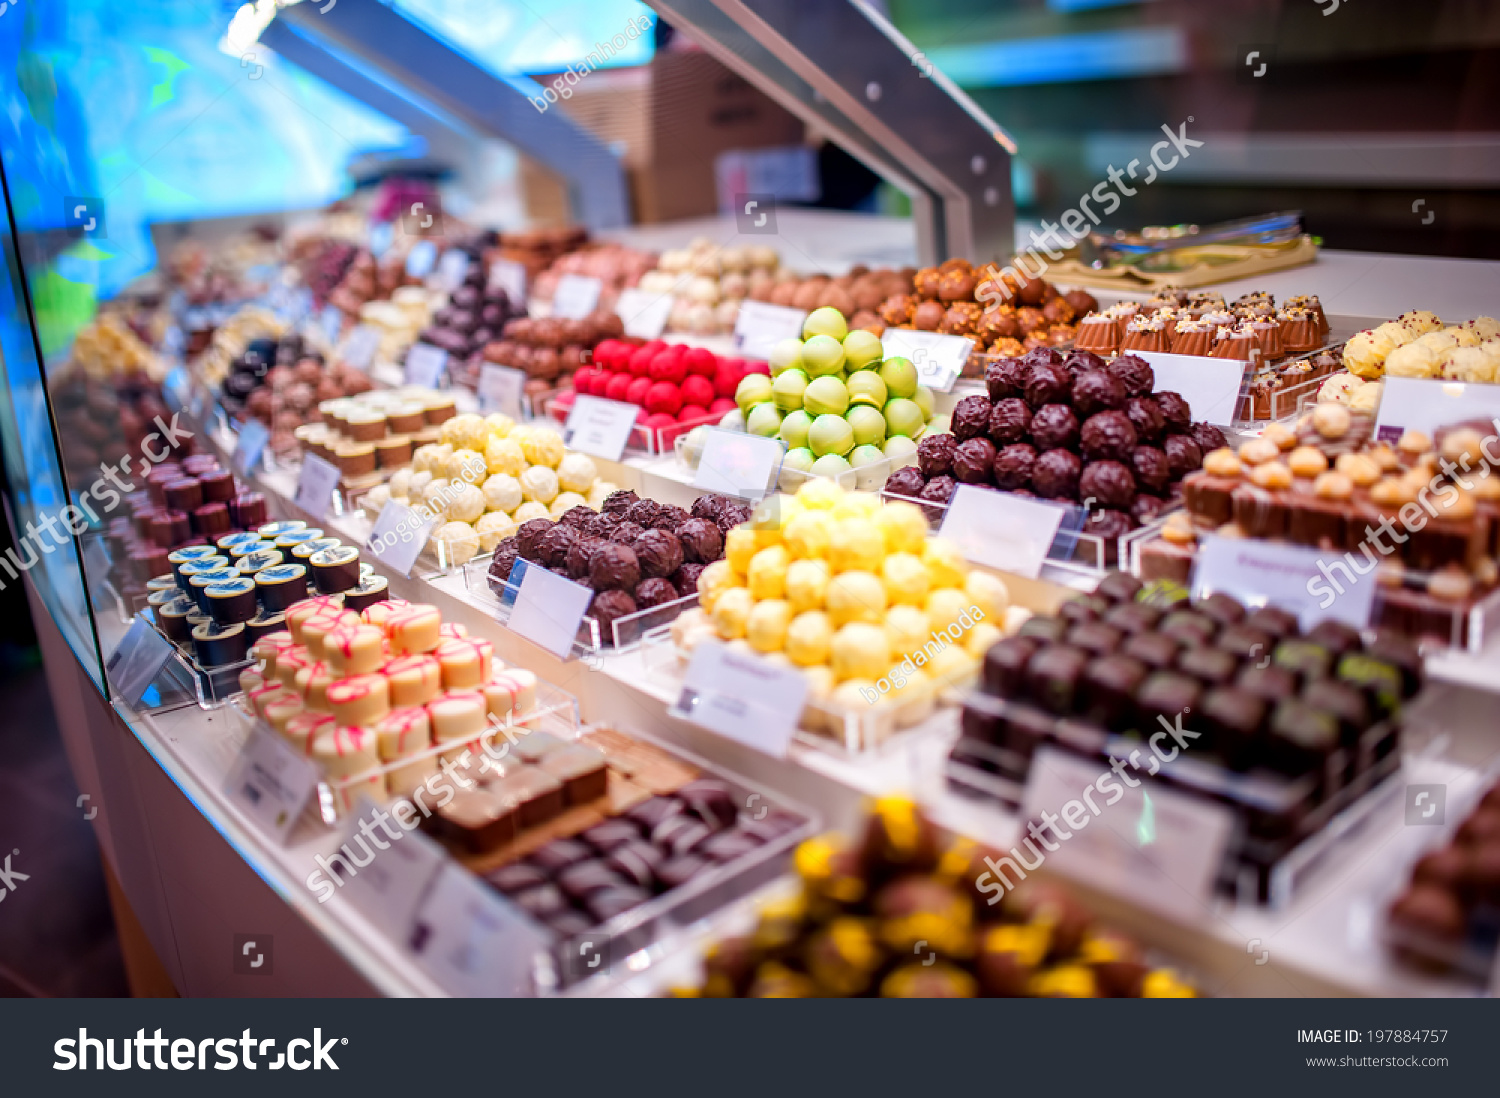 Chocolate Truffles Candies Sweets Store On Stock Photo 197884757 ...